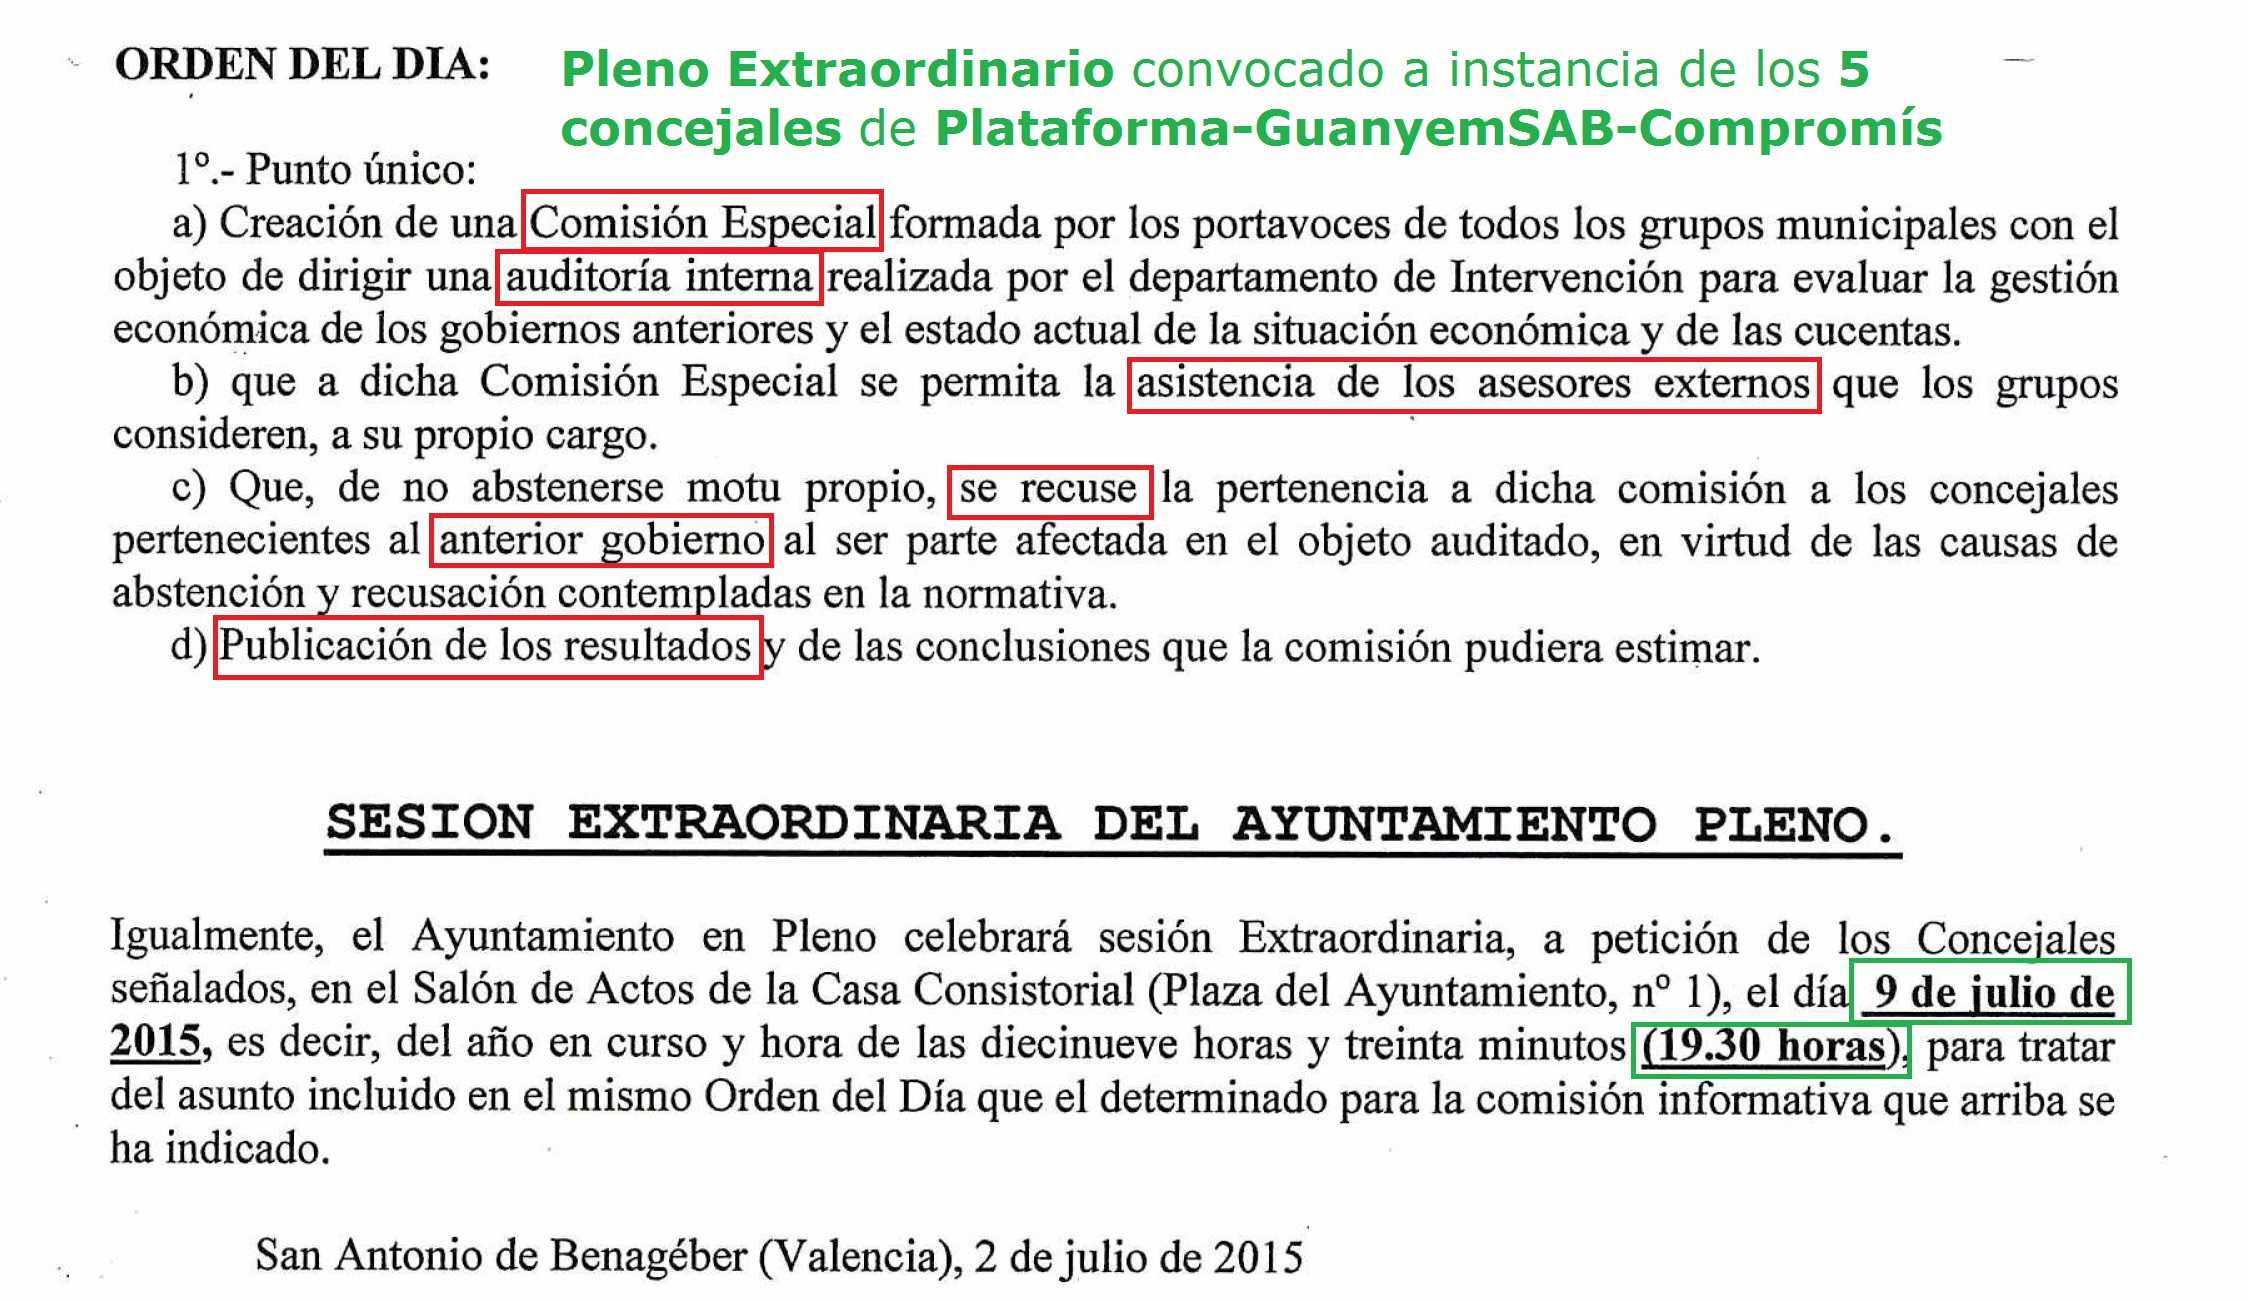 Pleno Extraordinario AUDITORIA 9 julio 2015